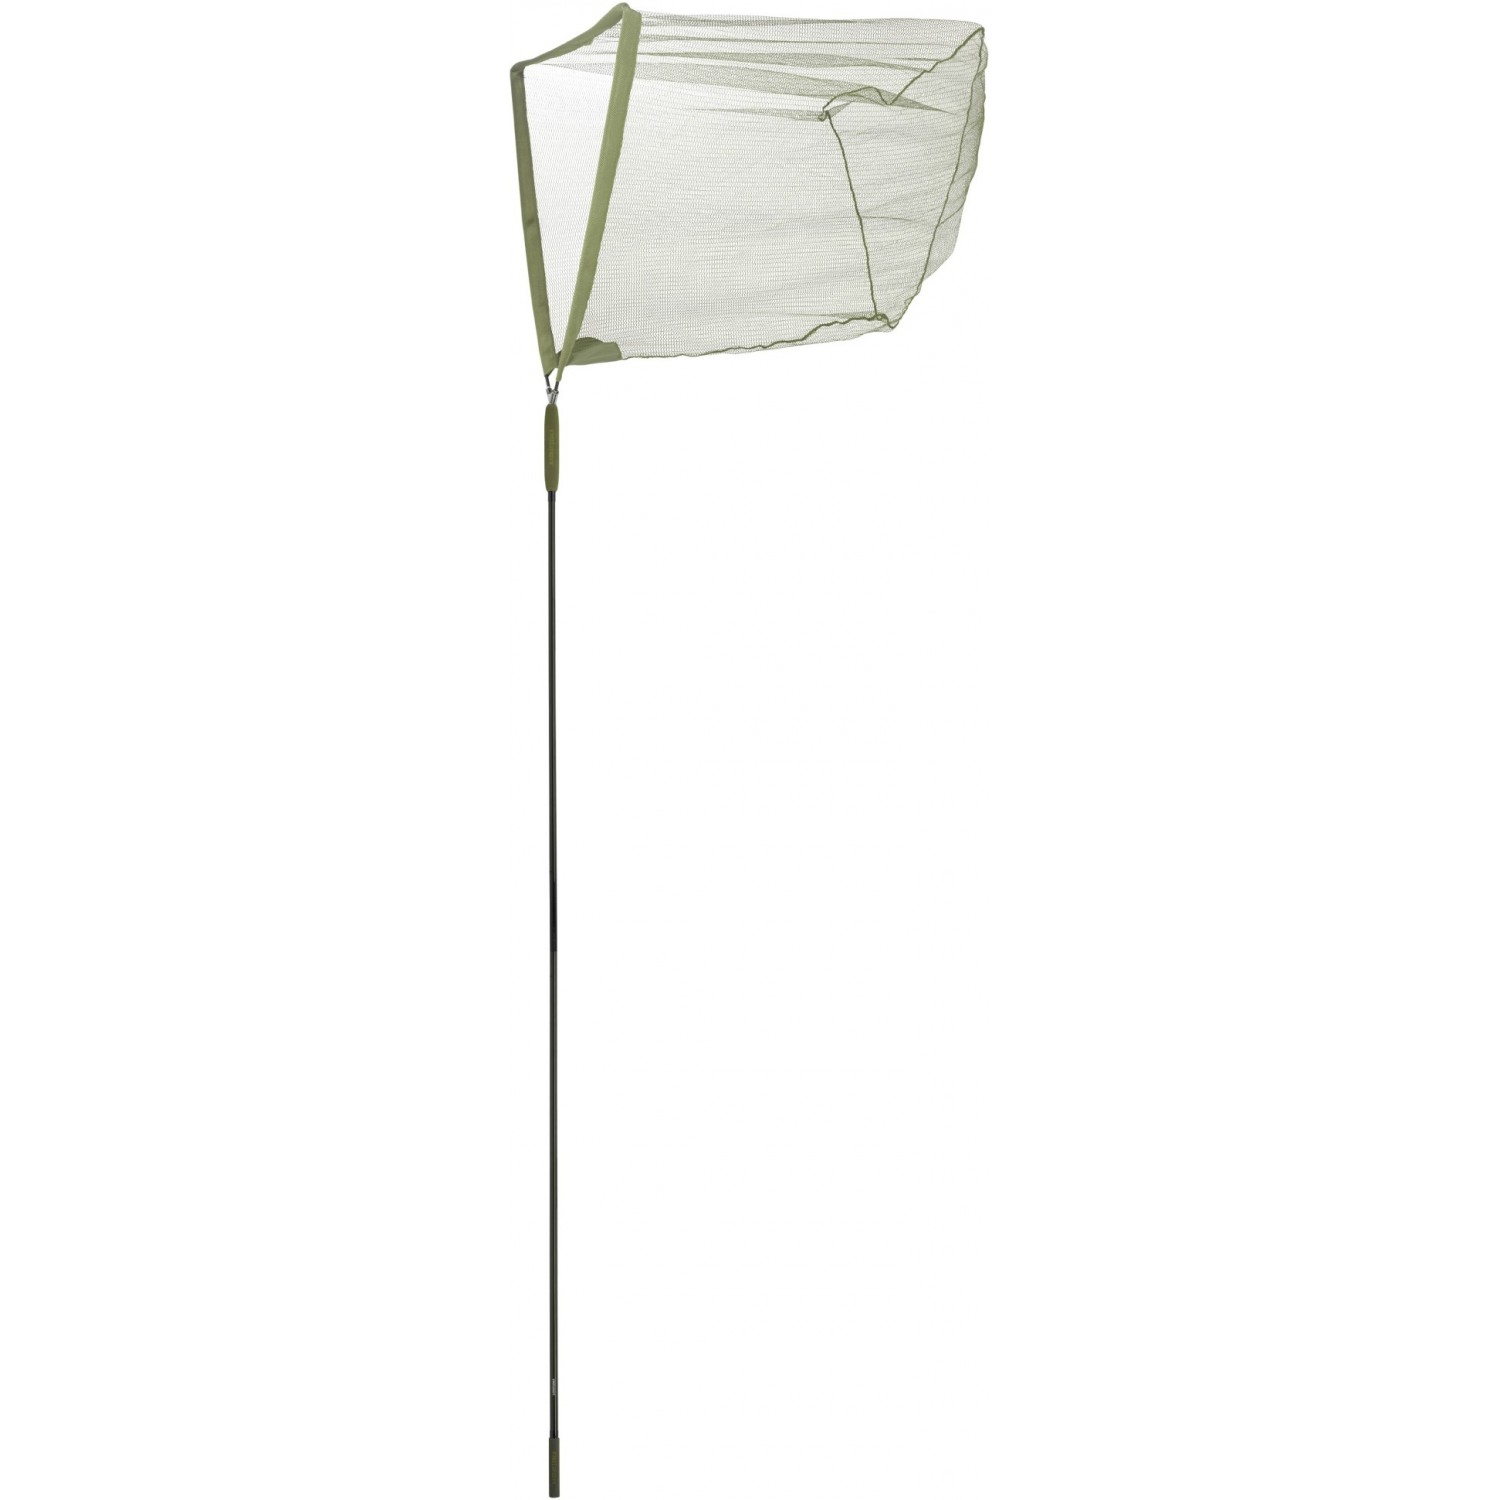 Pelzer Executive Pro Landing Net 1.80m,